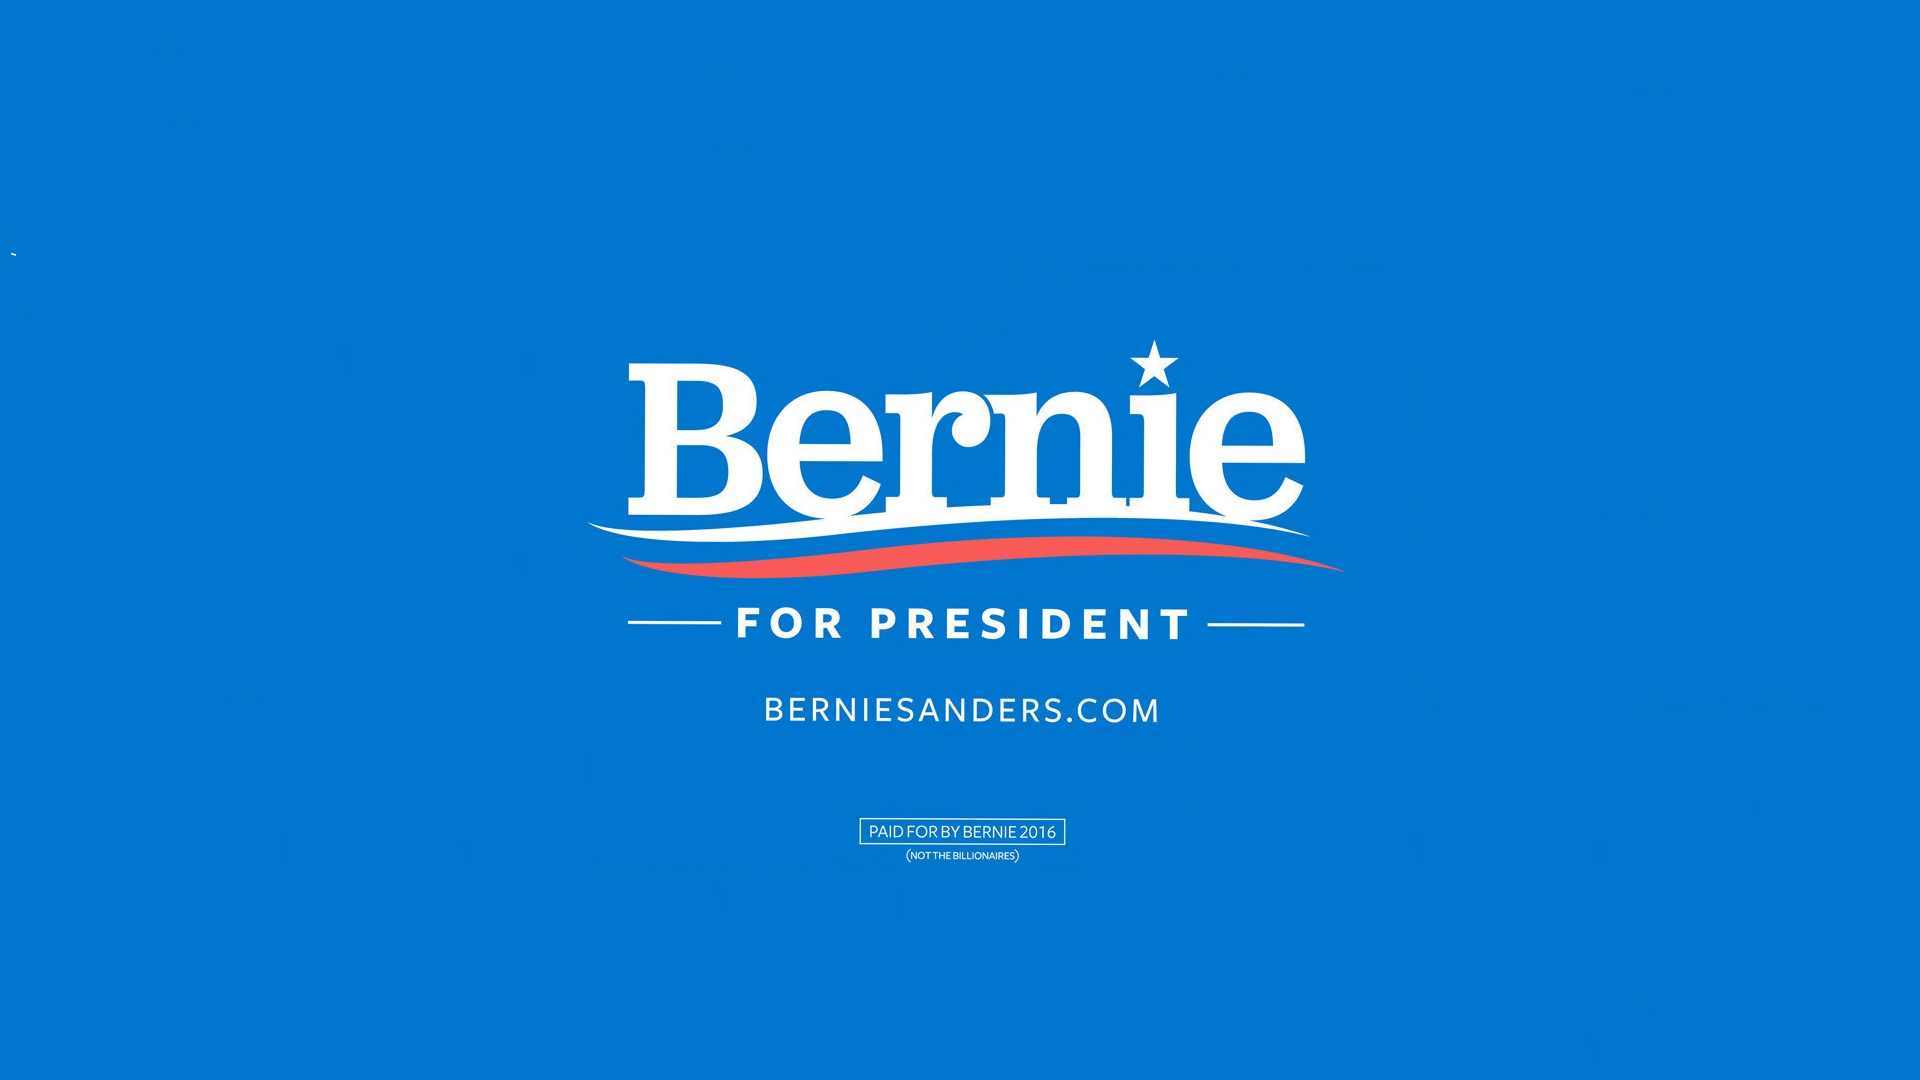 bernie sanders for president wallpaper. at the end of day cjimmy channels bernie c it is sanders for president wallpaper